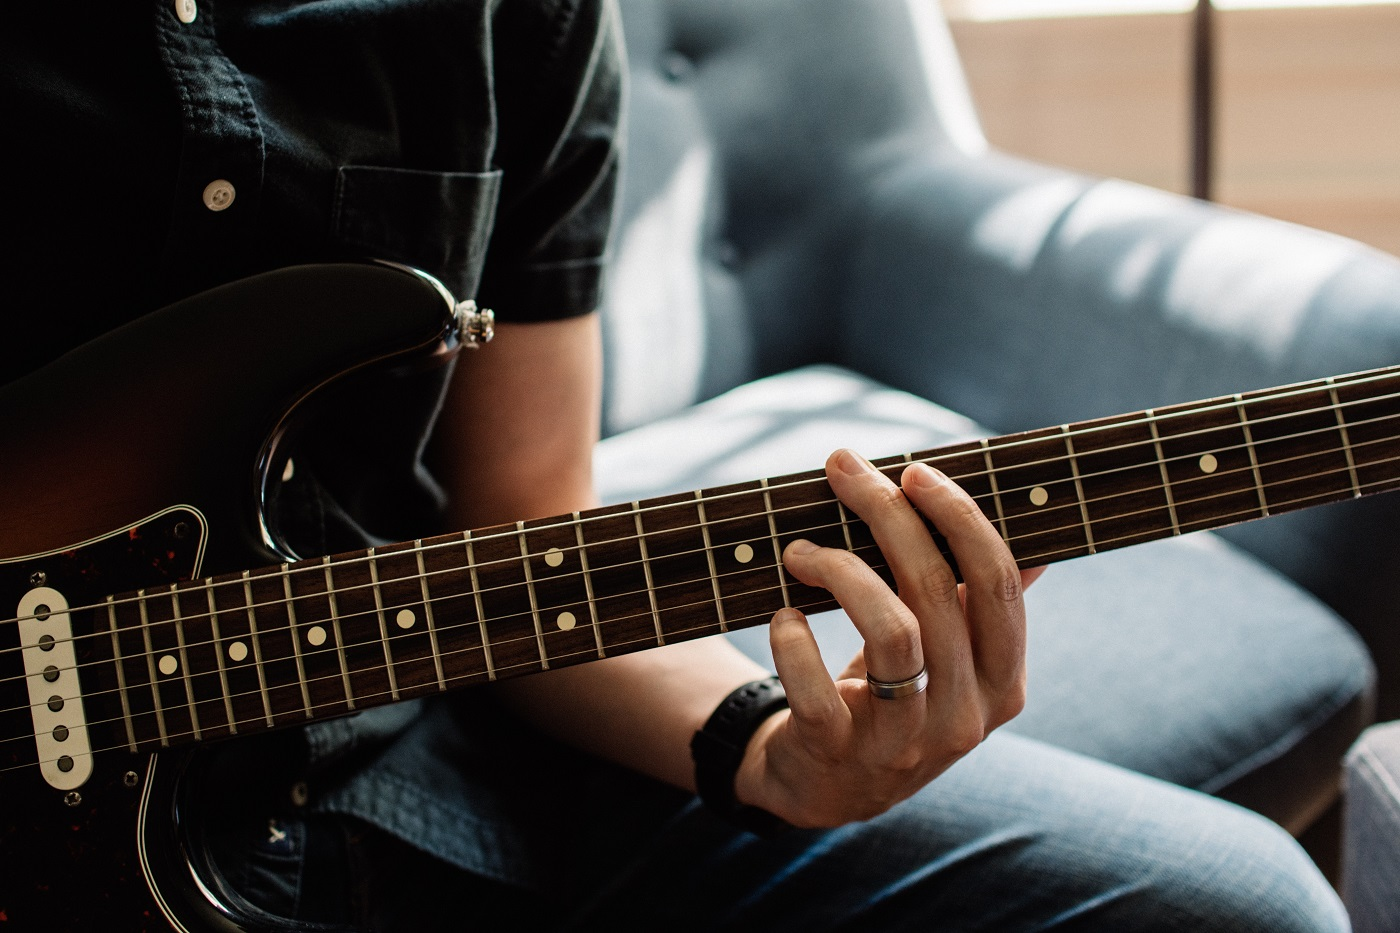 An in-depth review of the best electric  guitar strings available in 2019.